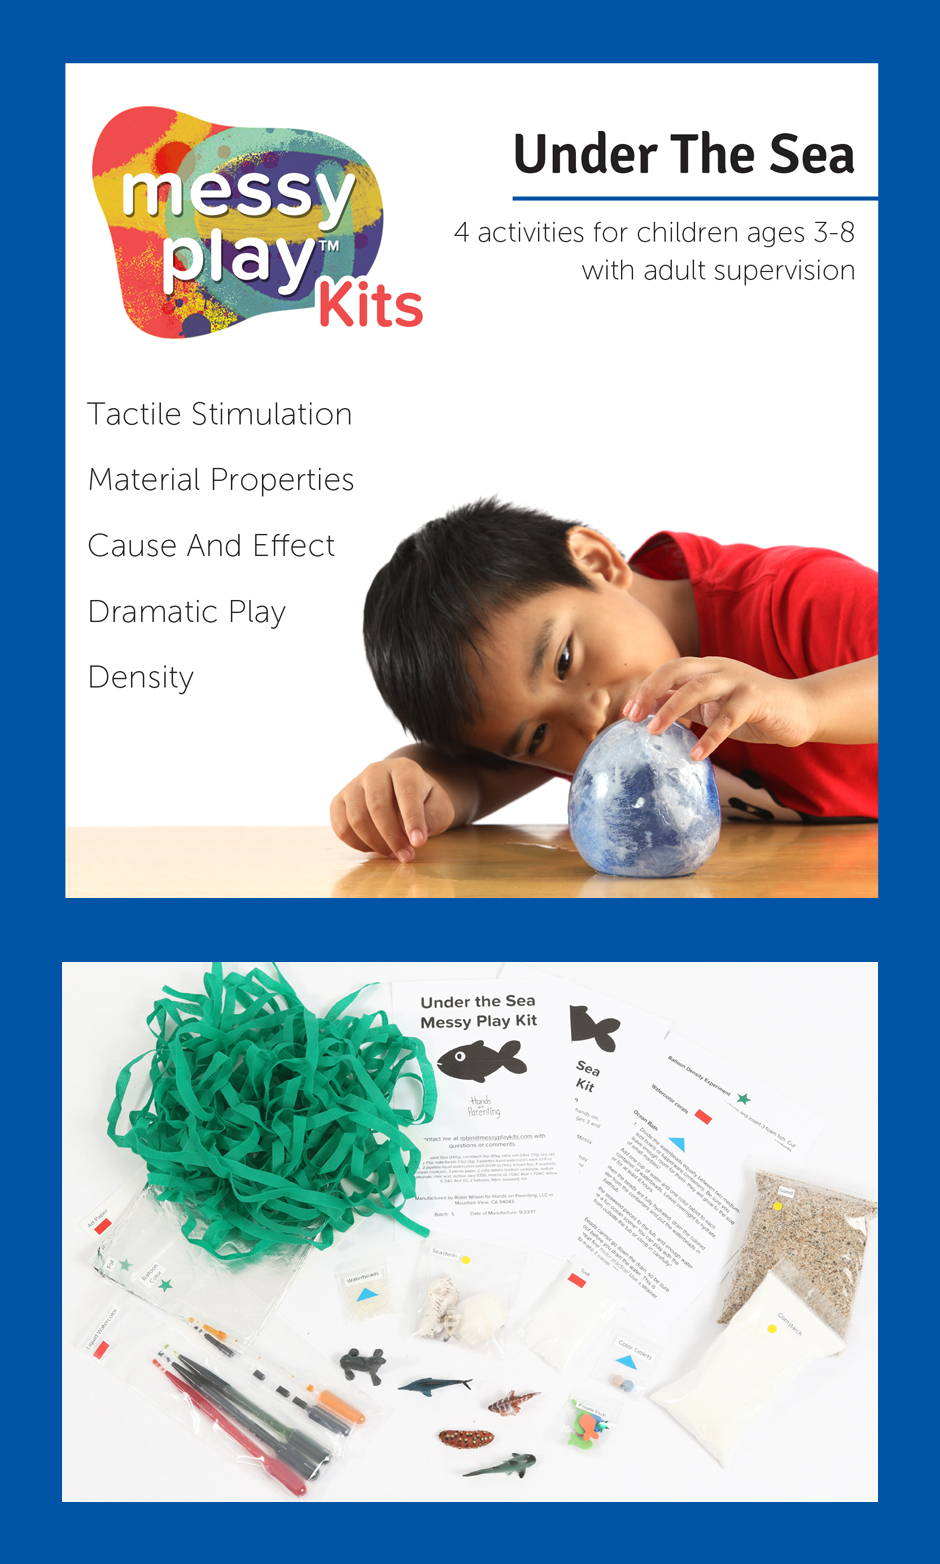 Under The Sea Messy Play Kit contains 4 activities that teach tactile Stimulation, material properties, cause and effect, dramatic play, and density.